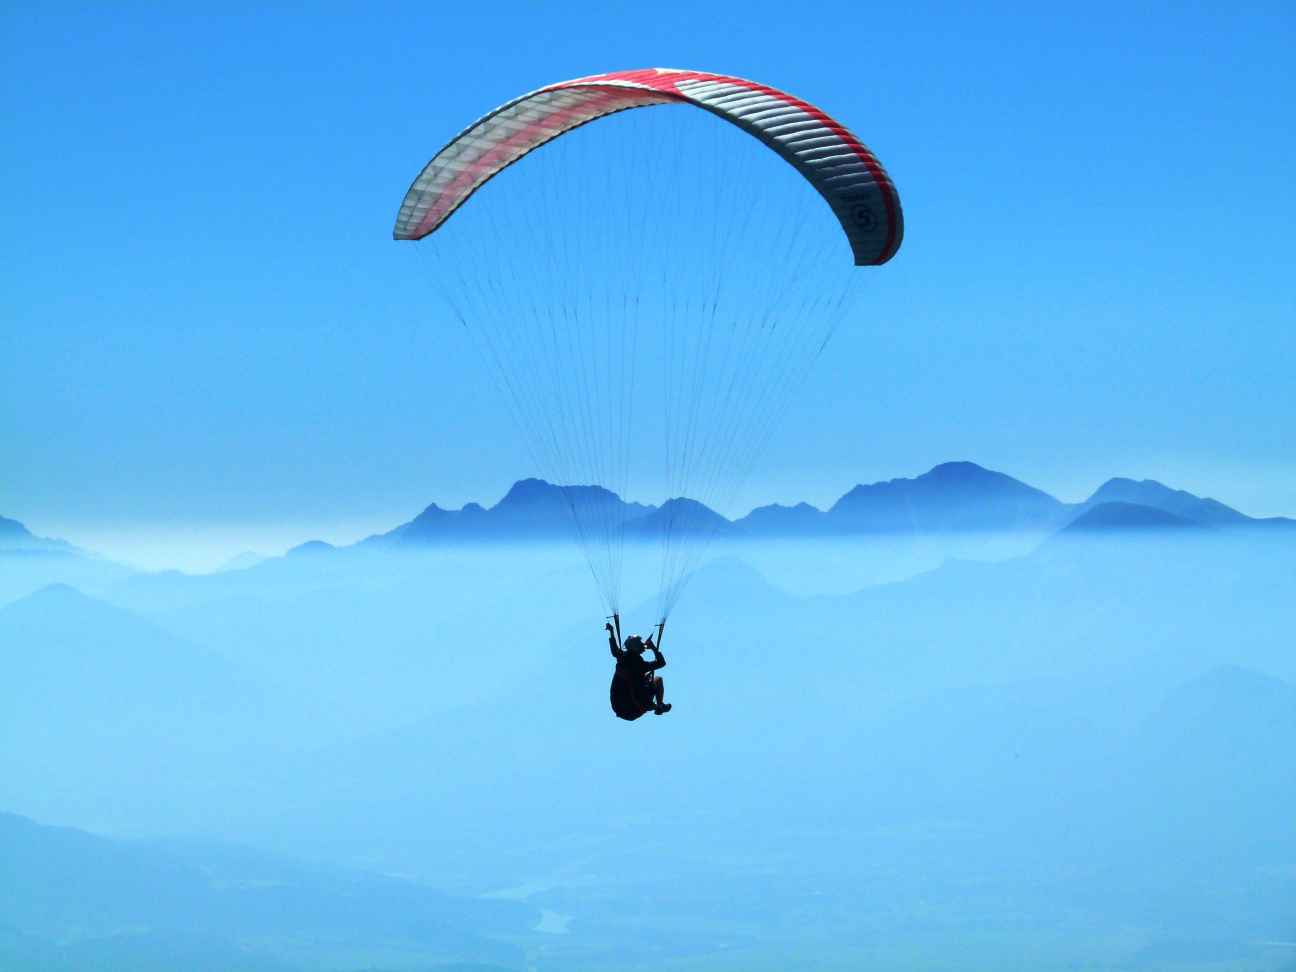 person-doing-paragliding-above-clouds-during-daytime-65677